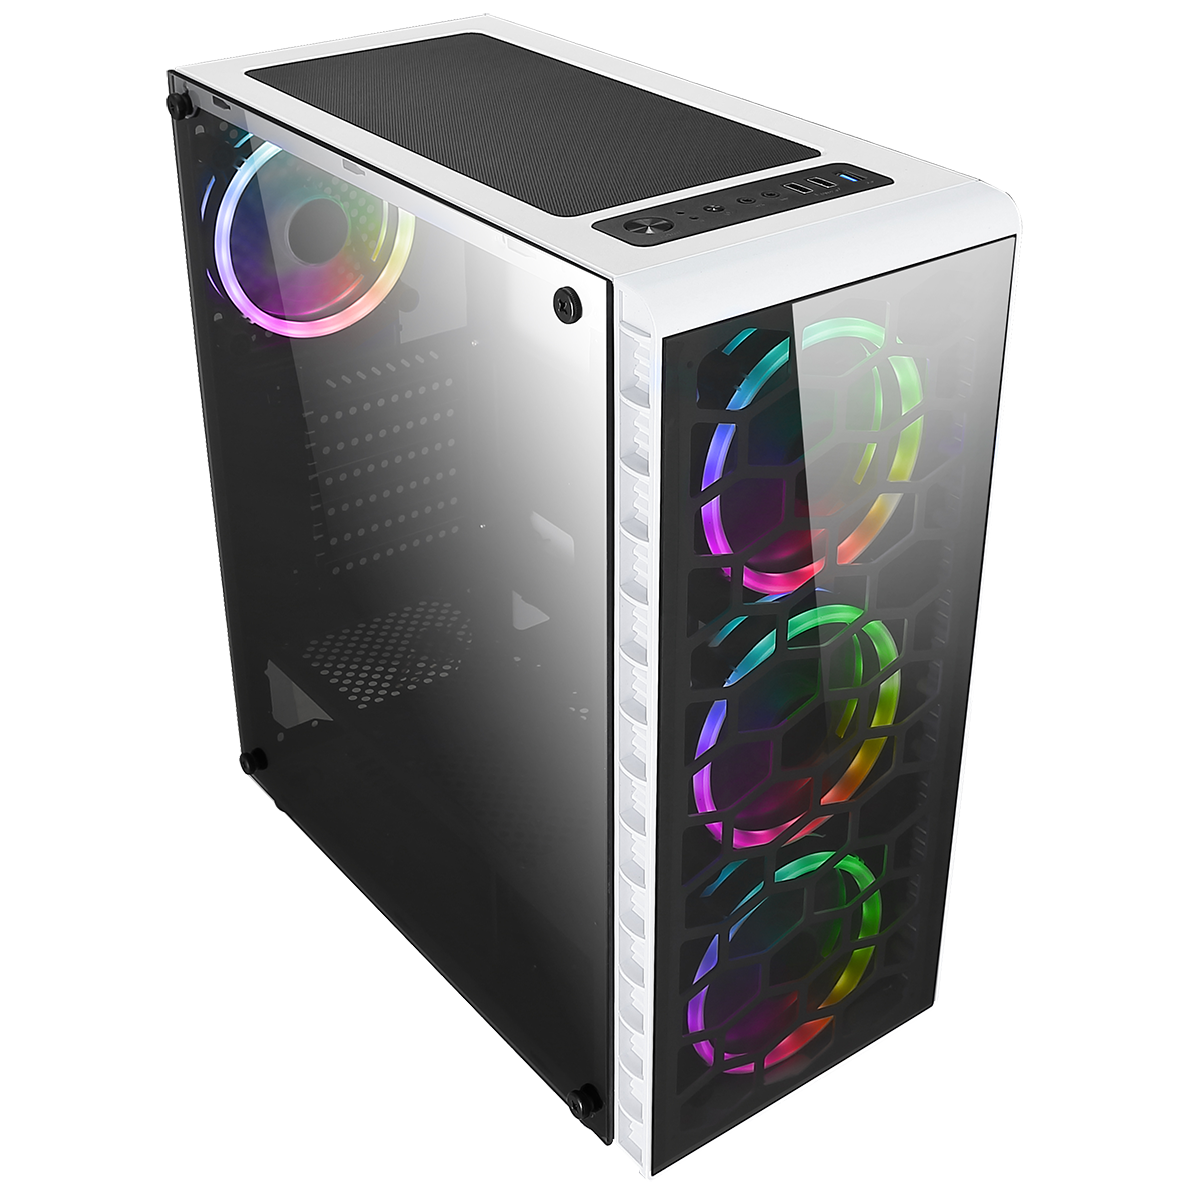 HST Raider RGB Ryzen 3 2200G Quad Core GTX/RTX Customisable Gaming PC